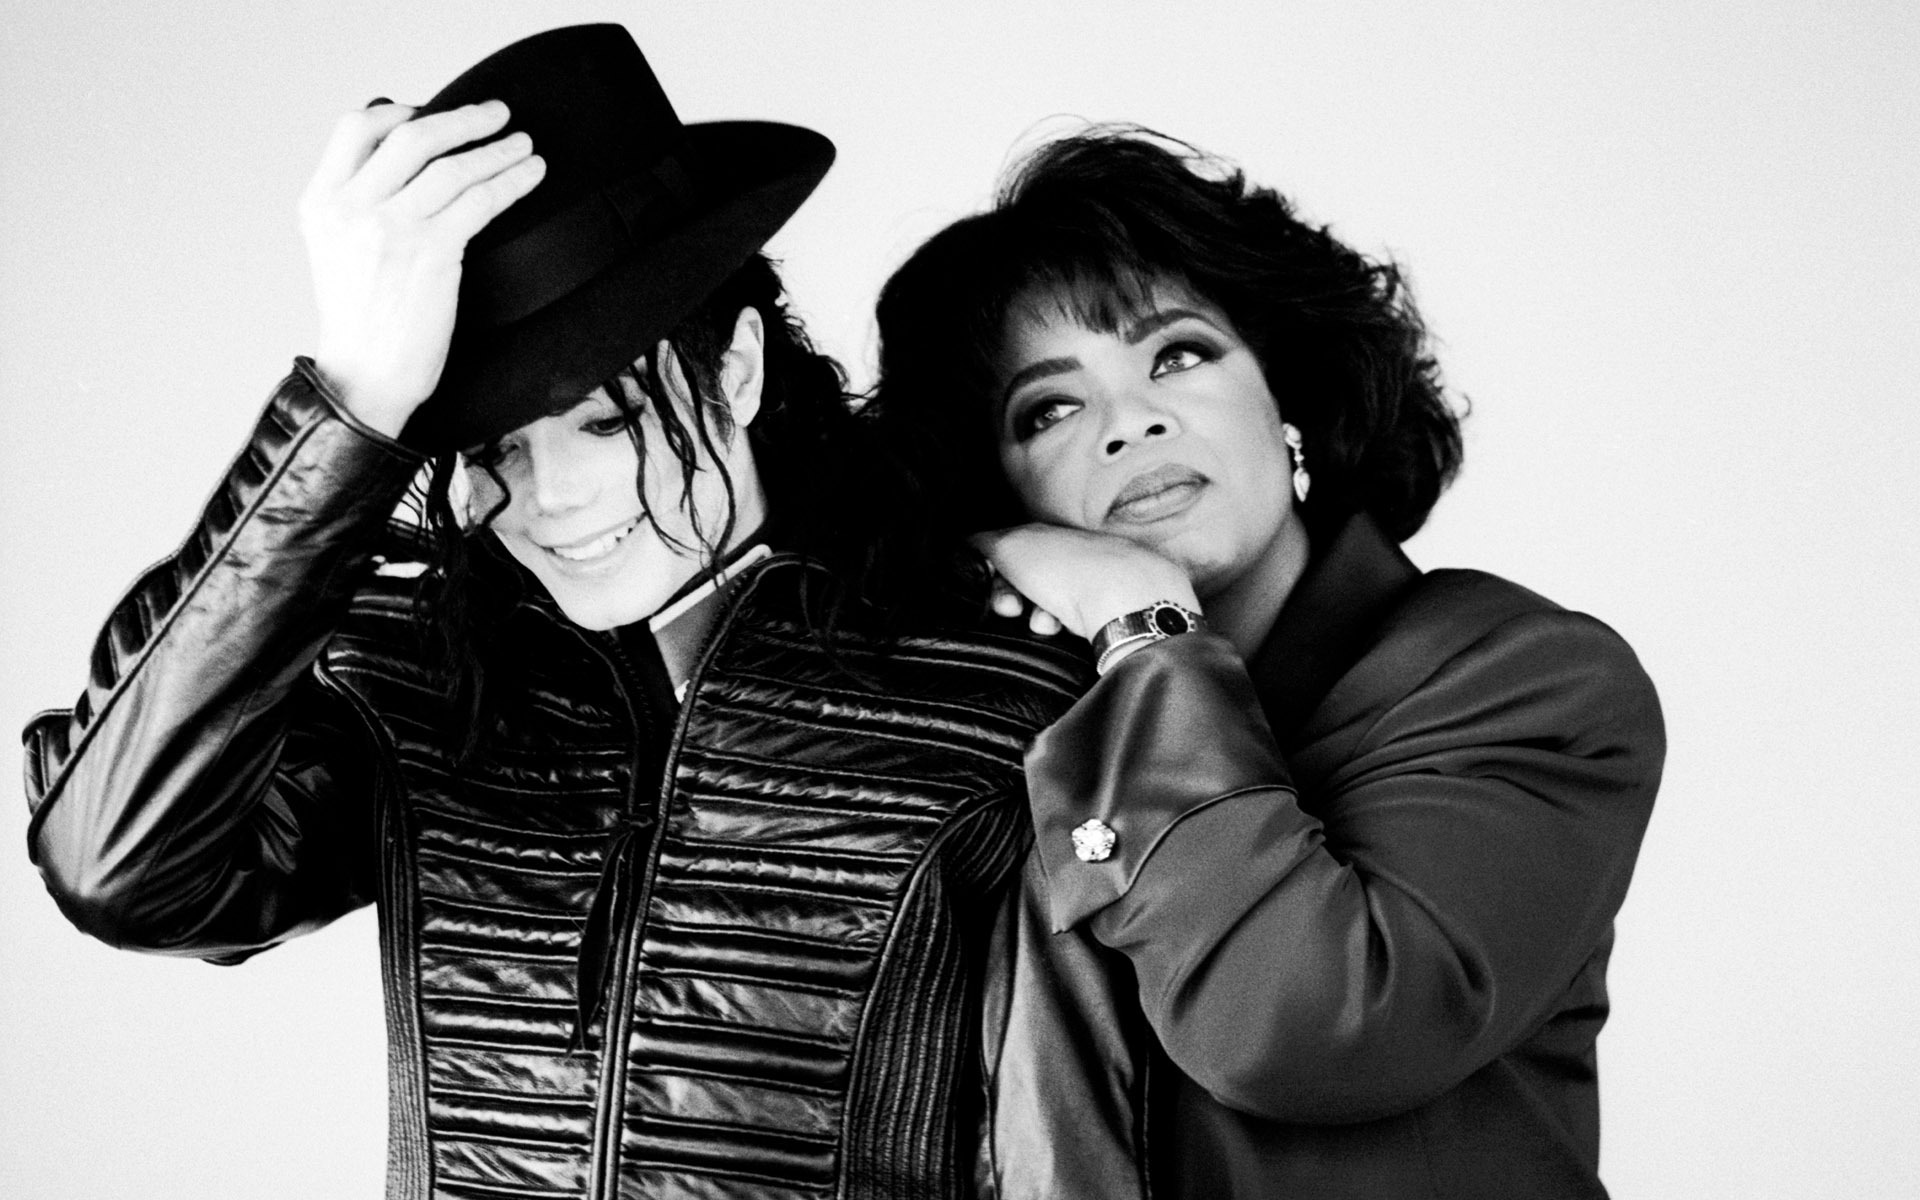 Michael Jackson and Oprah Winfrey